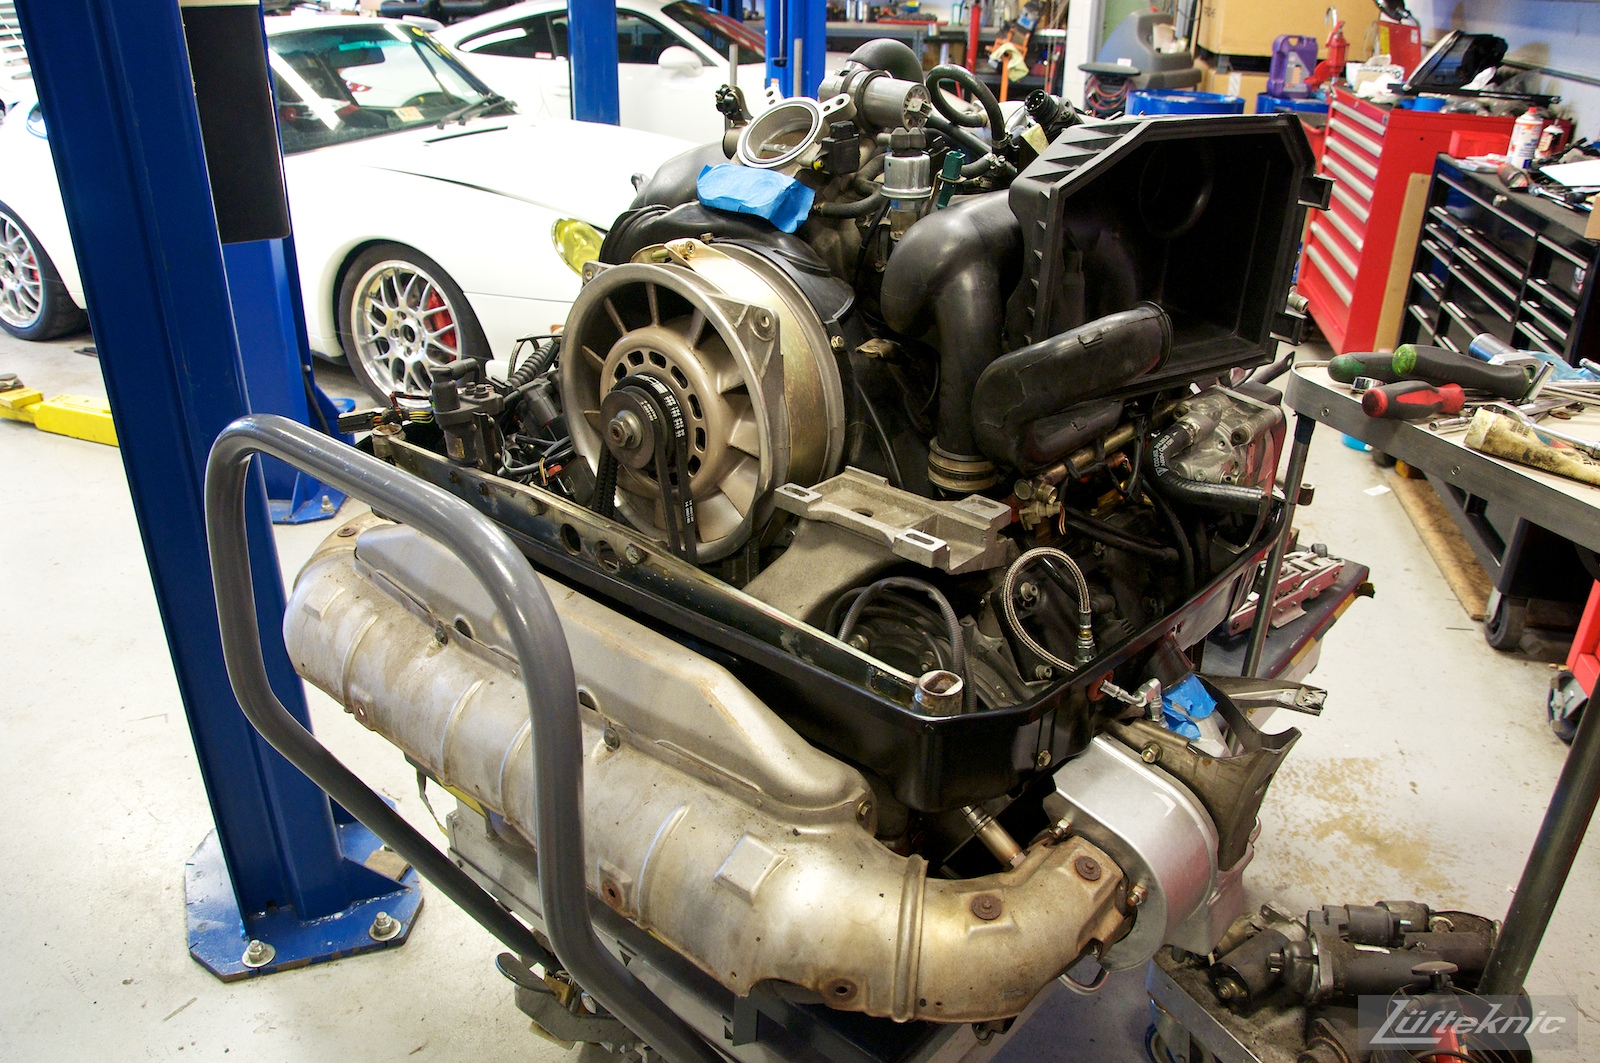 993 Turbo motor freshly rebuilt with hybrid turbos, waiting to be installed.